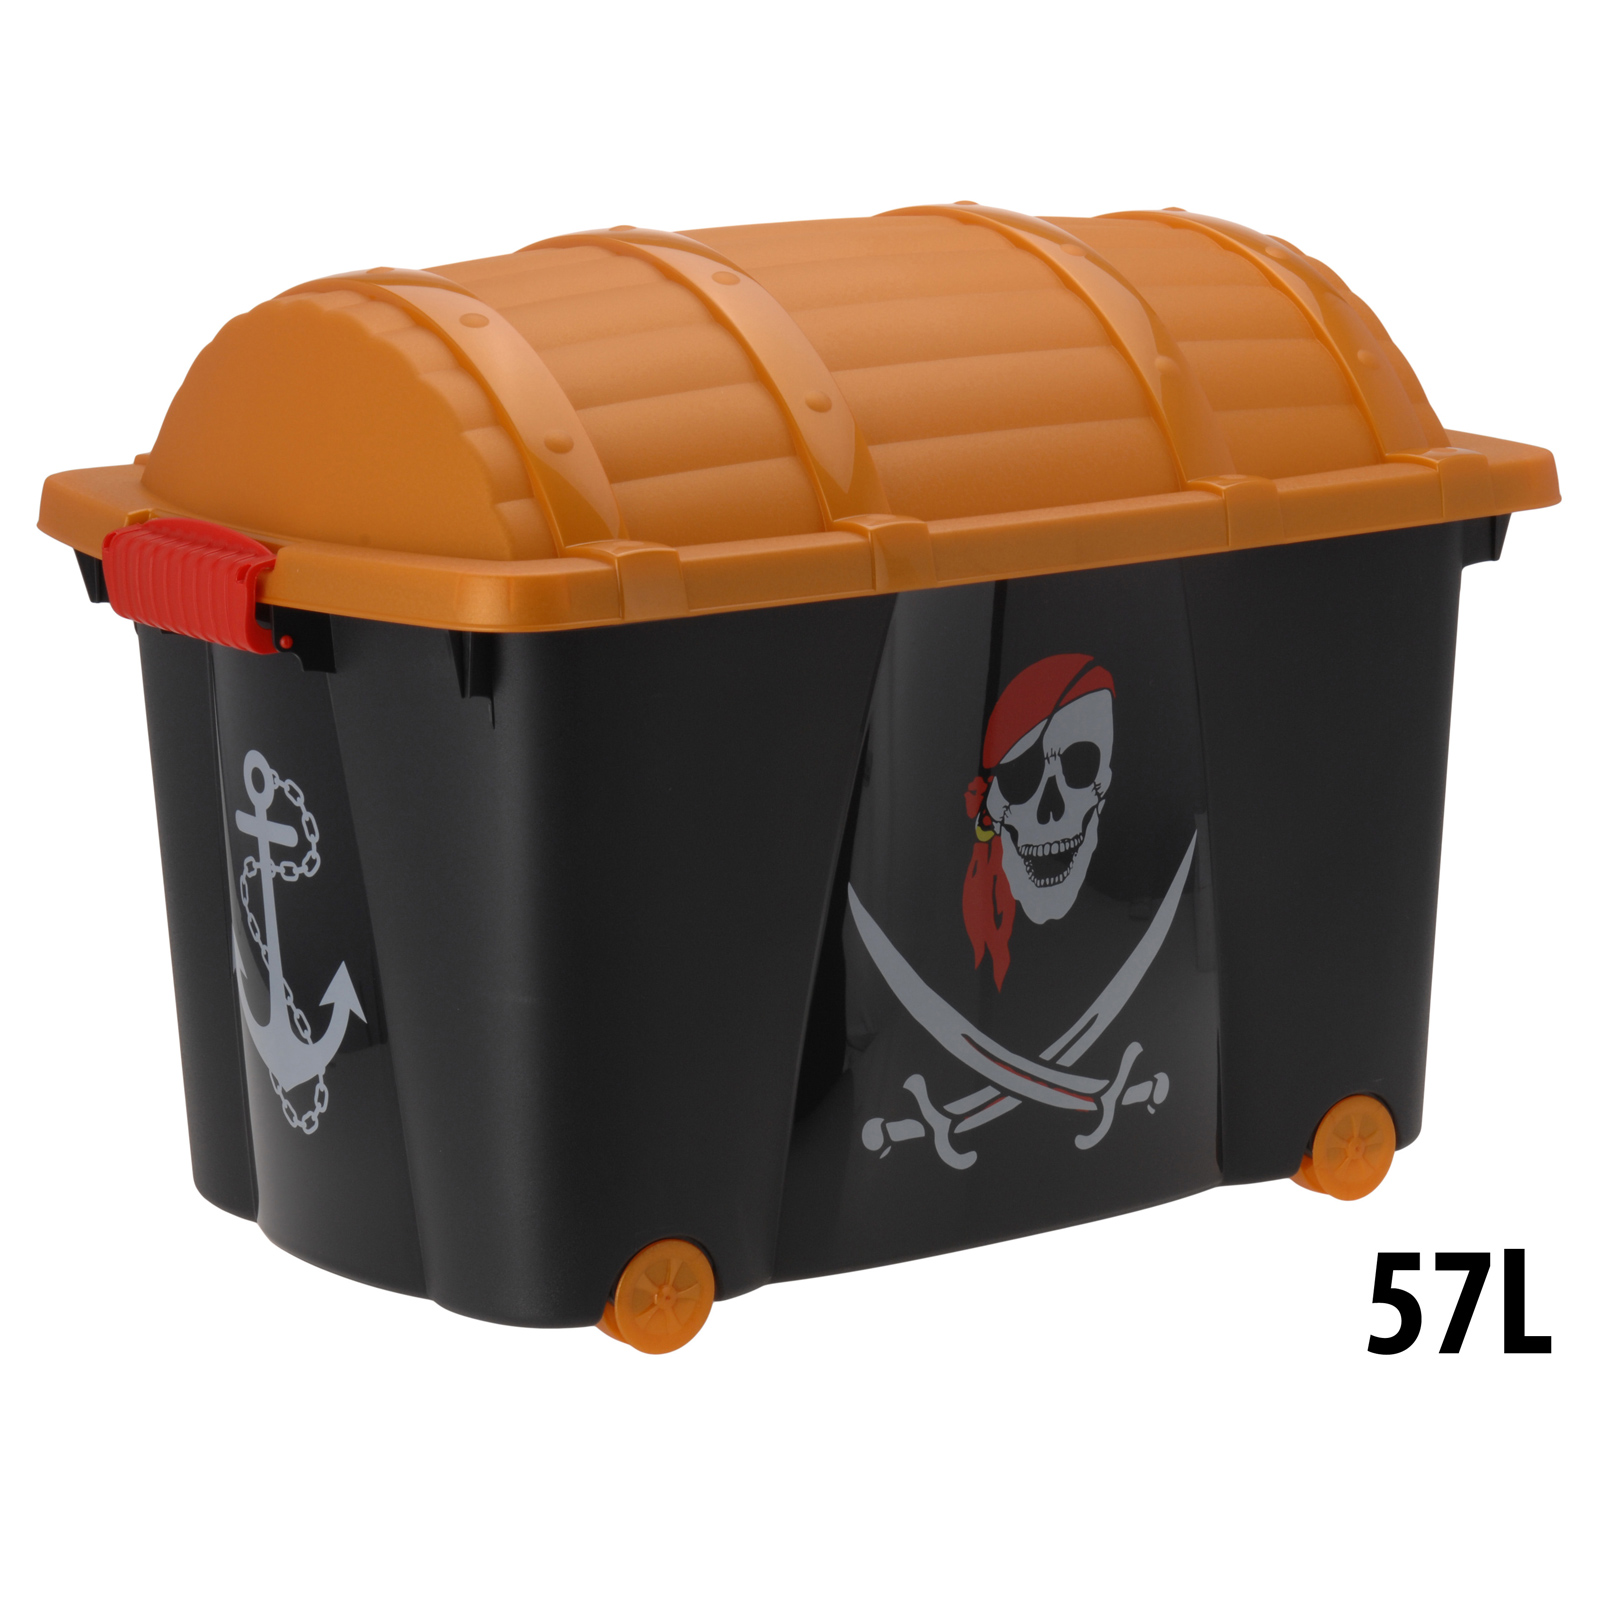 Toy Box Storage Pirate Chest Kids Childrens Organiser